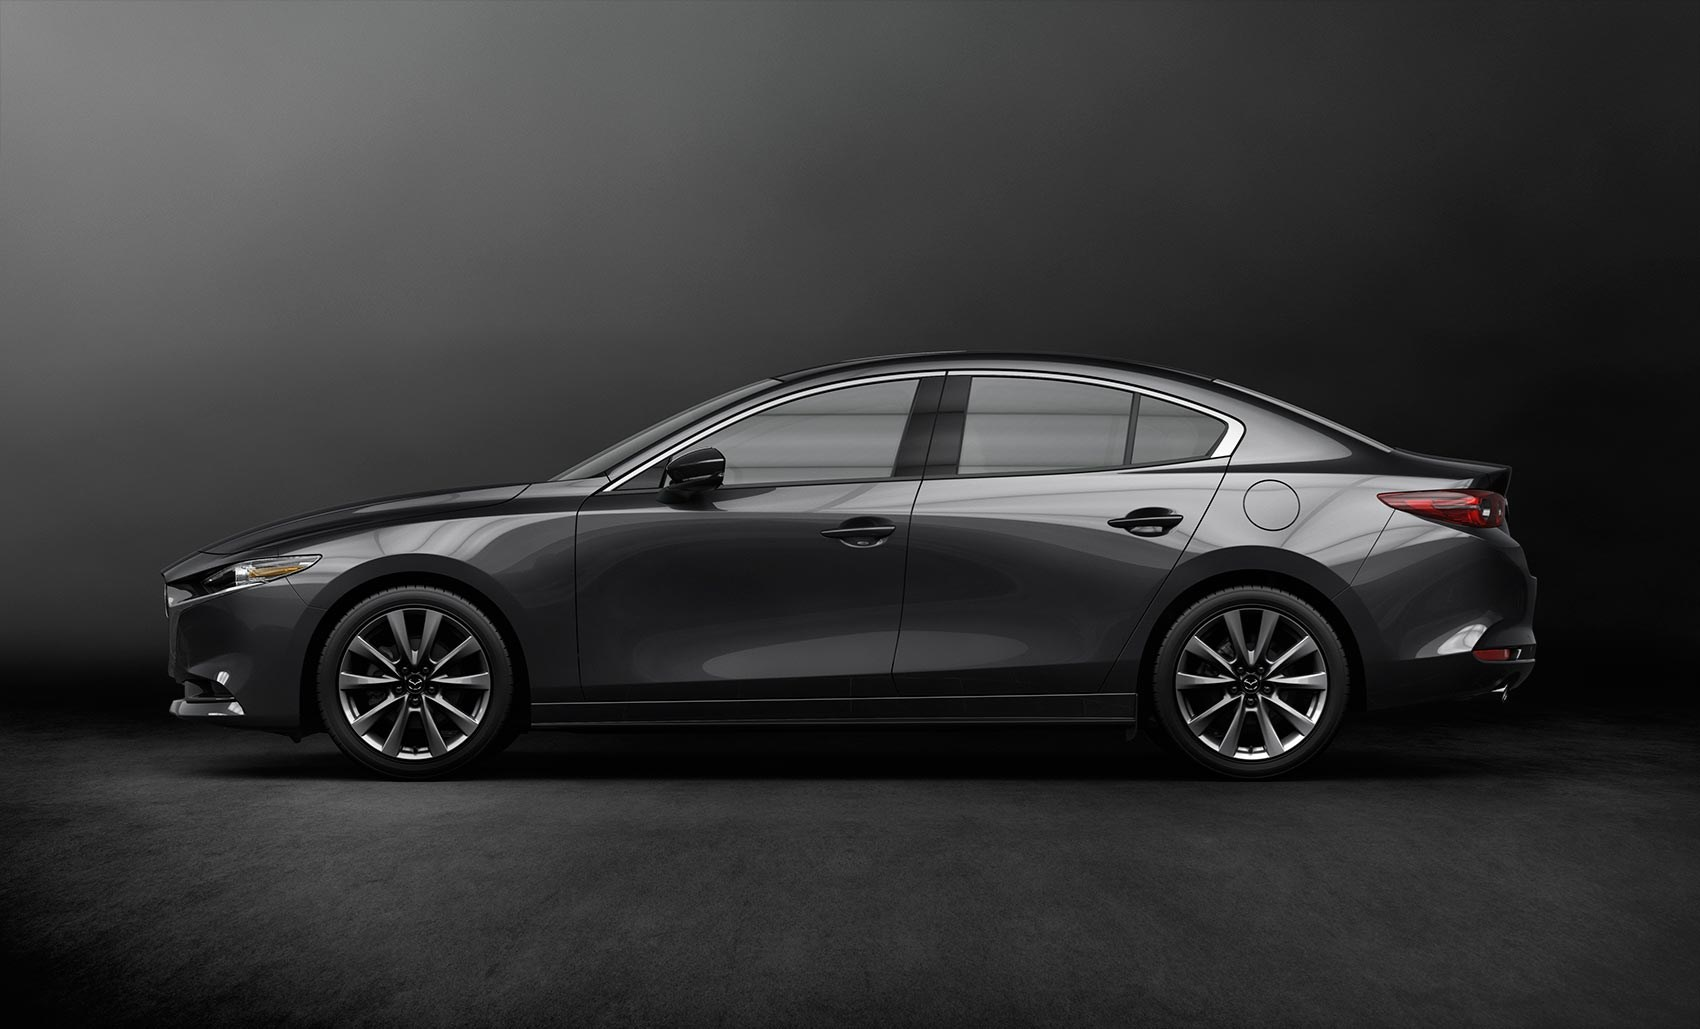 The New 2019 Mazda 3 Sedan Saloon Four Door Delete As Ropriate In Your Country